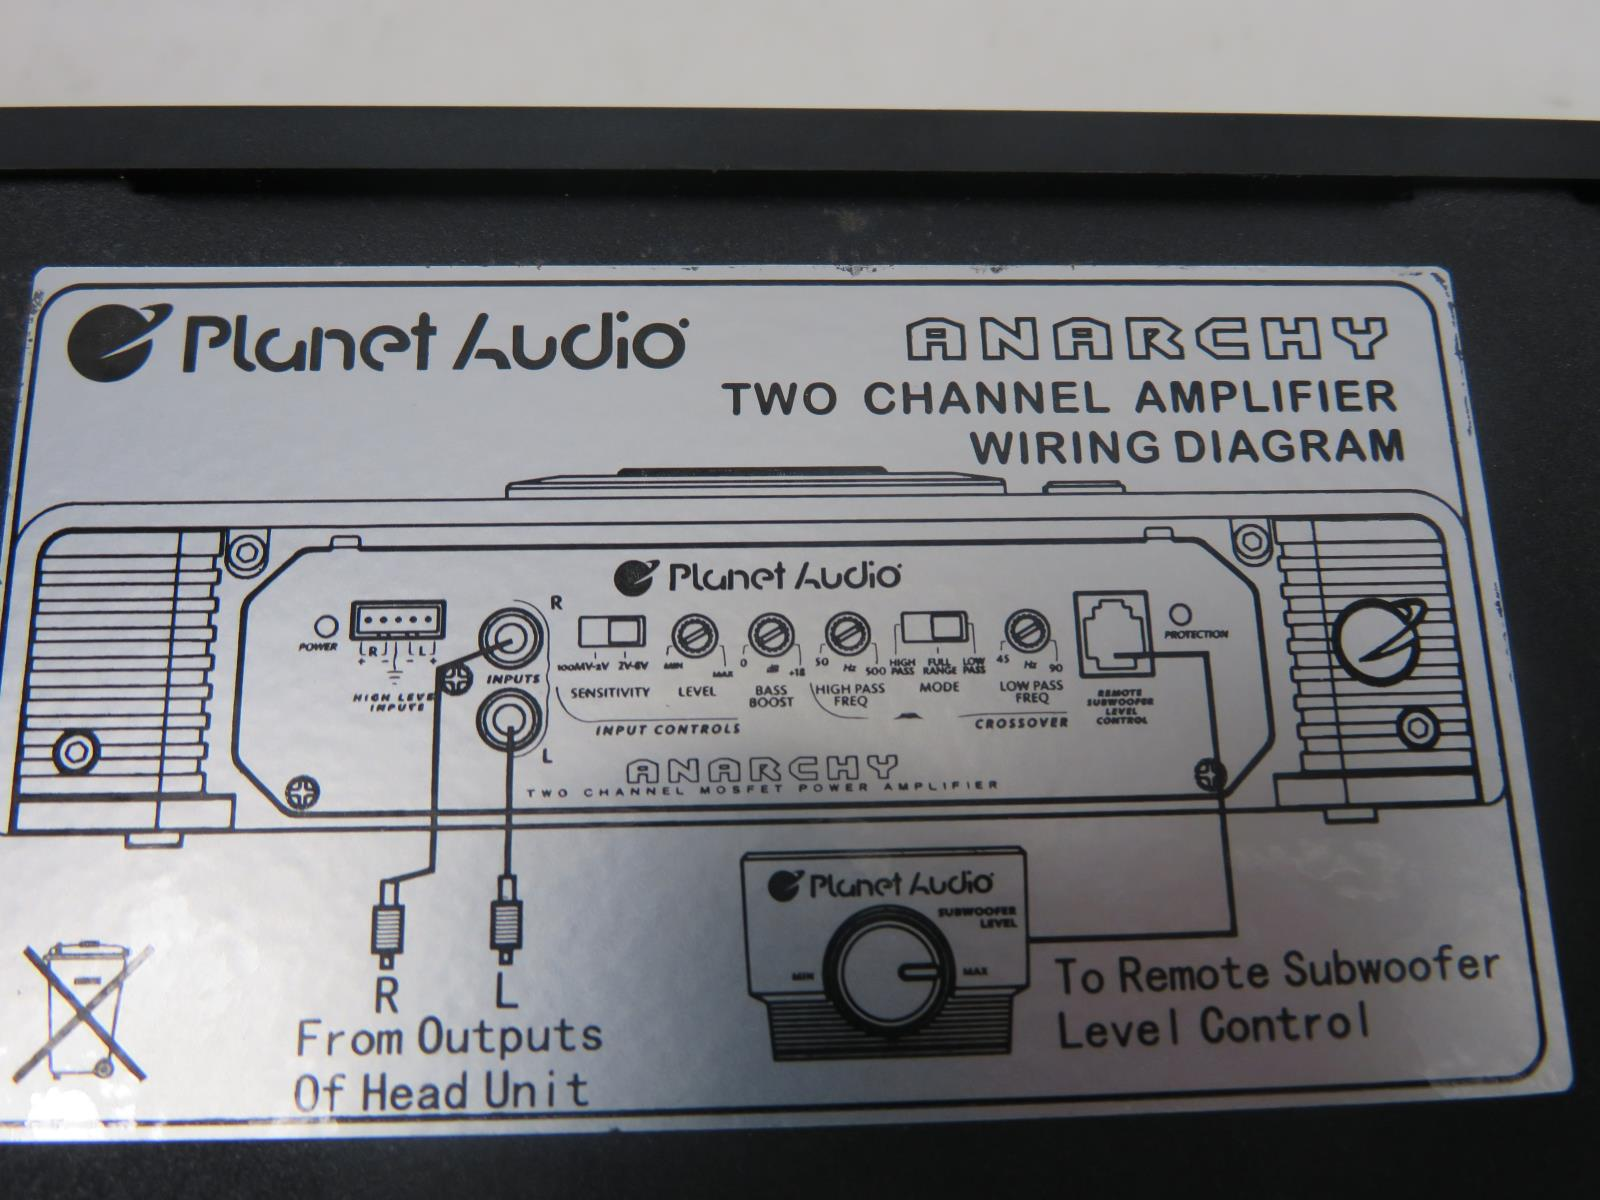 Planet Audio Ac12002 Anarchy 1200 Watt 2 Channel 4 Ohm Stable Wiring Rules Faq About Us Payment Shipping Return Contact